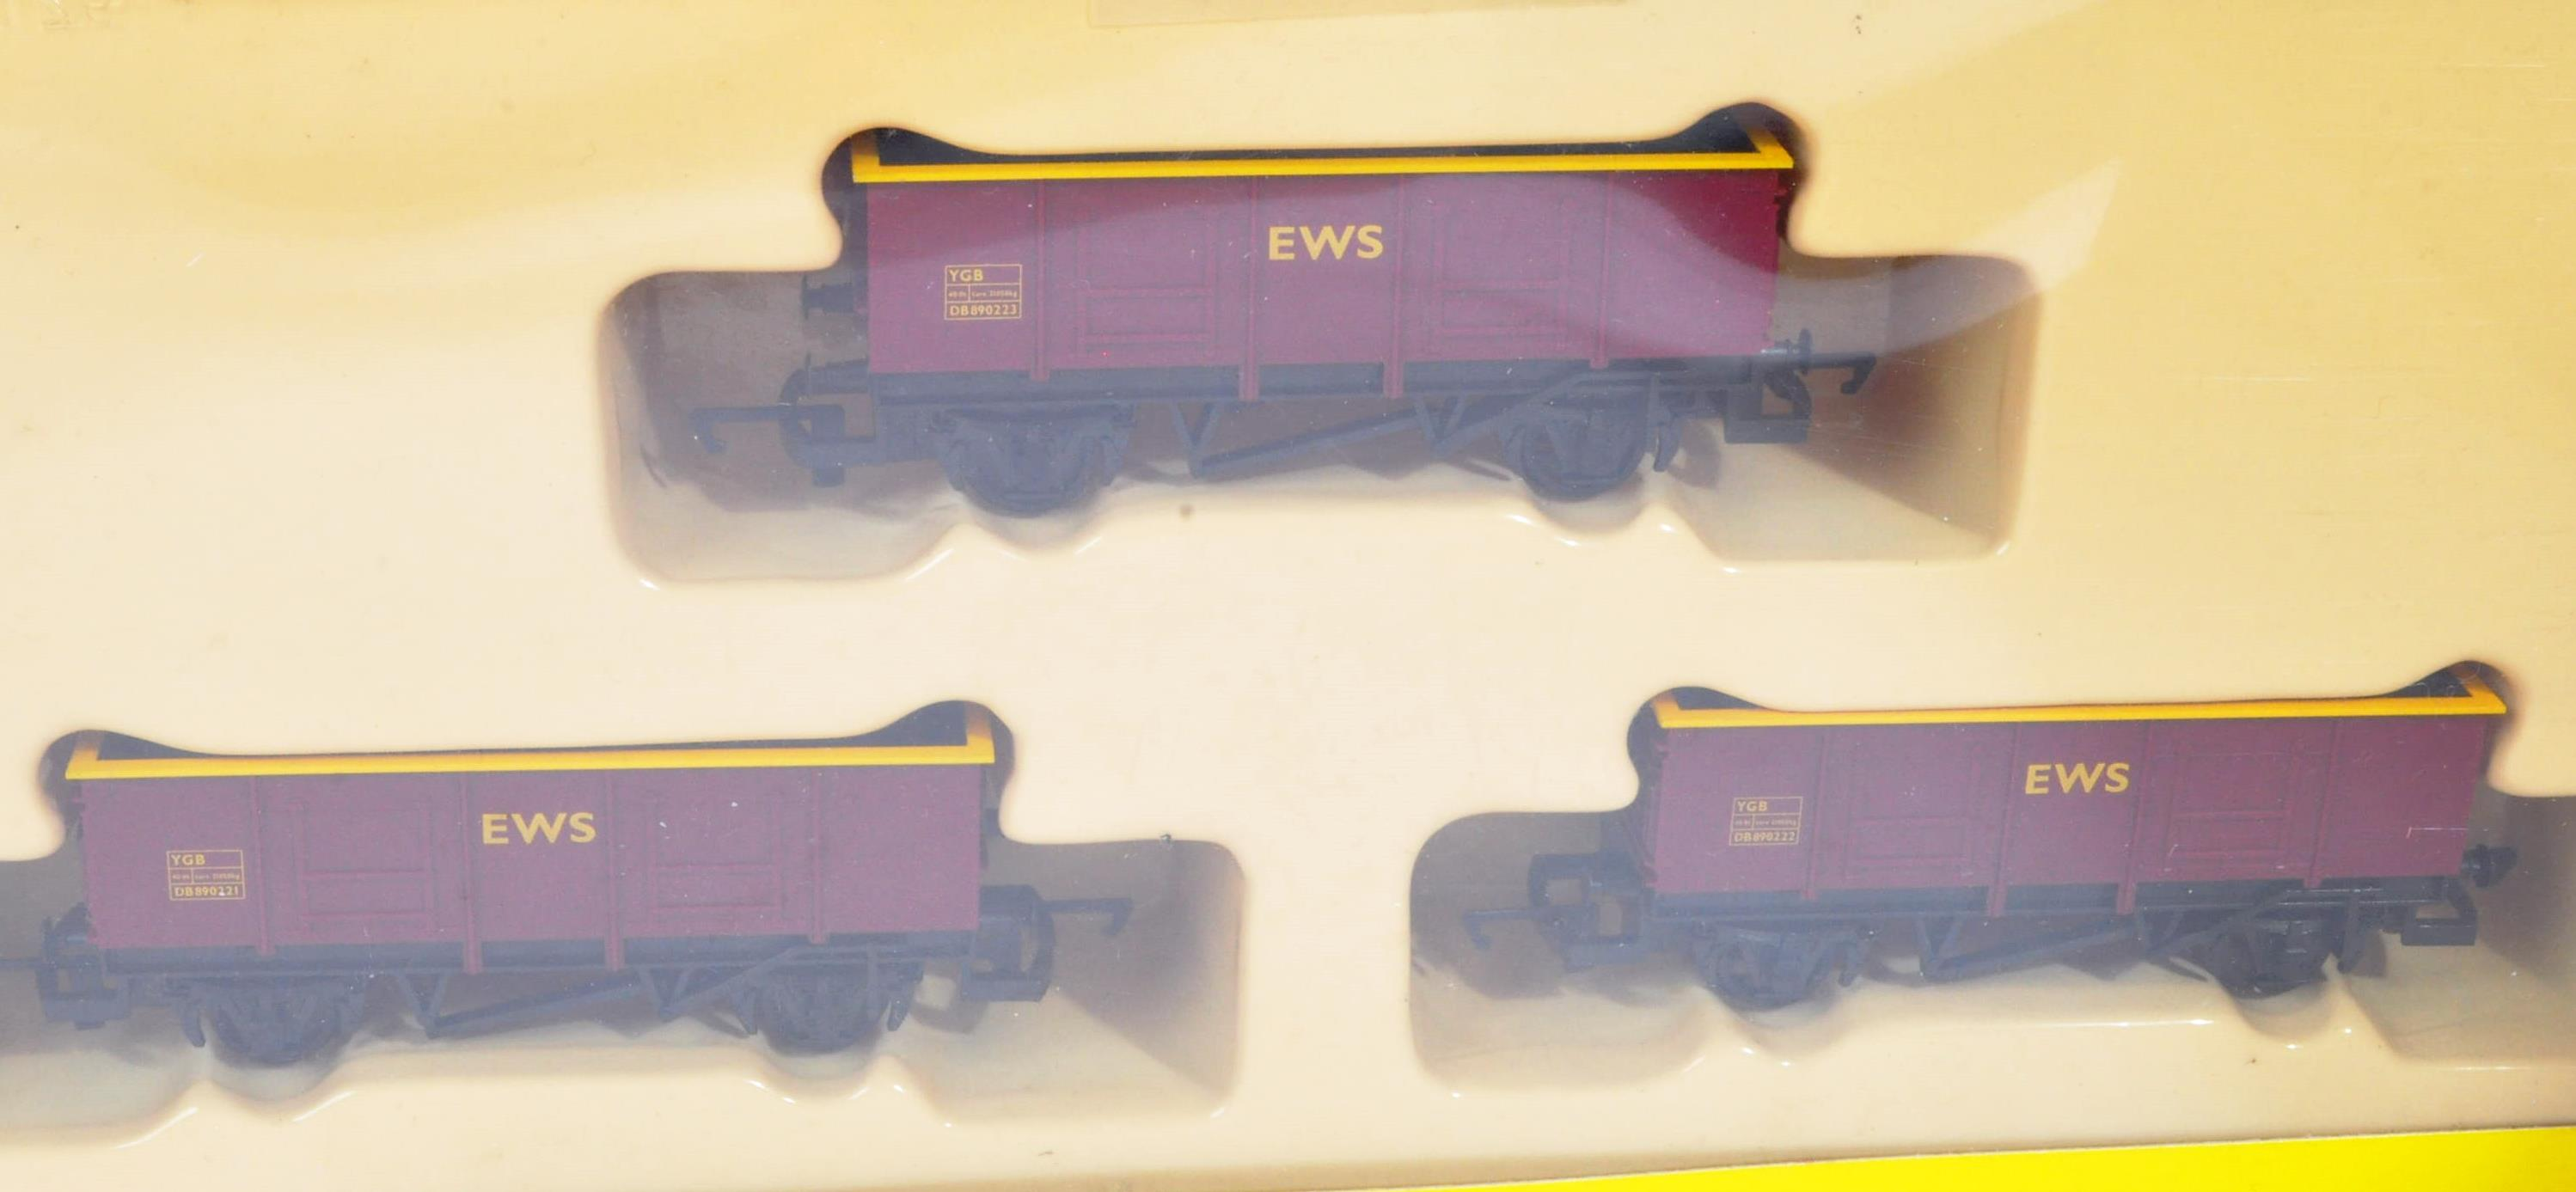 COLLECTION OF HORNBY 00 GAUGE MODEL RAILWAY ROLLING STOCK SETS - Image 3 of 5